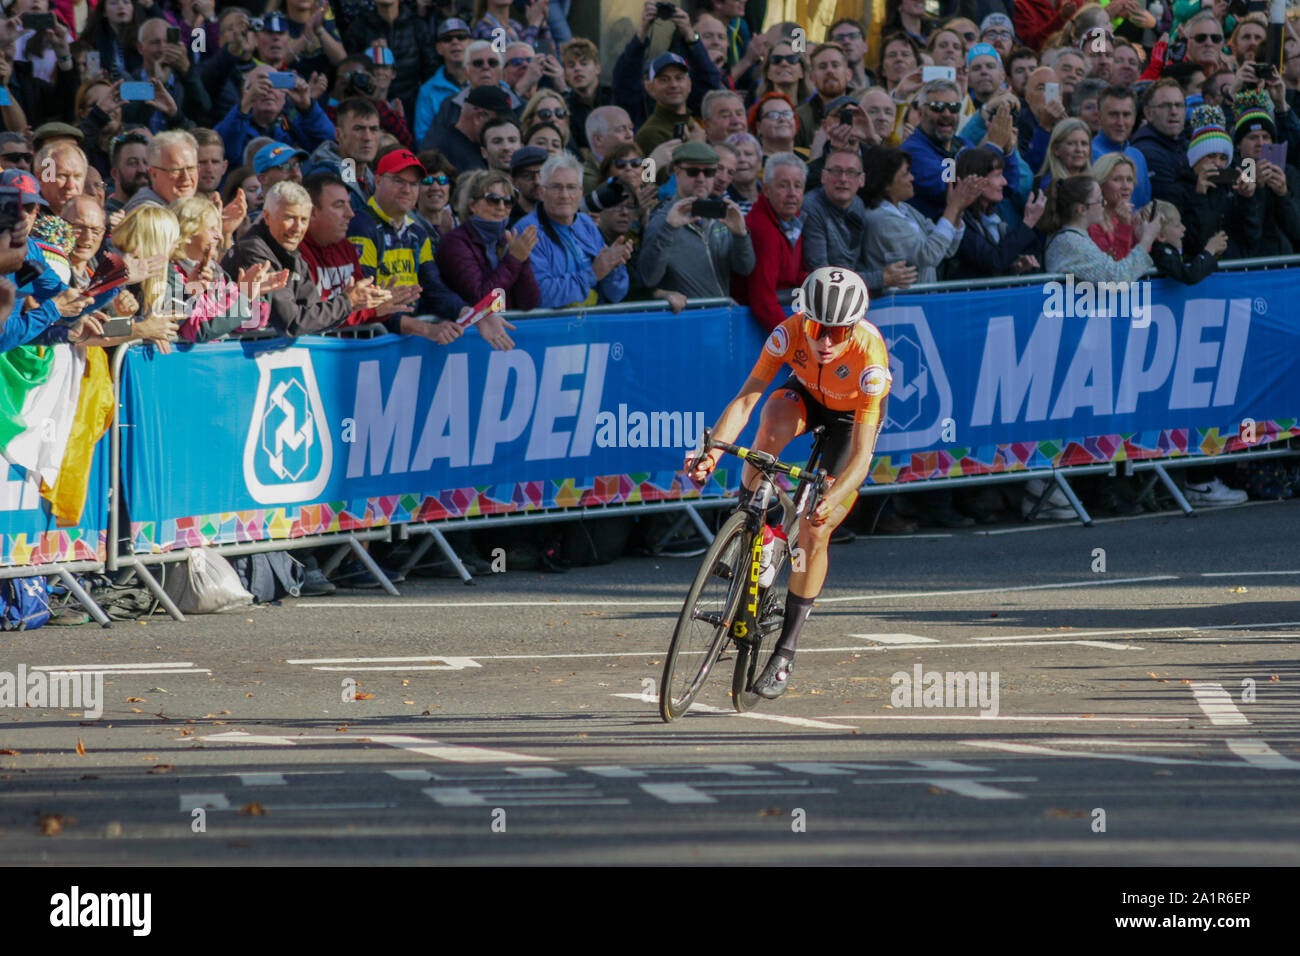 Harrogate, UK. 28th Sep, 2019. Annemiek Van Vleuten of the Netherlands tackles one of the many hills on the Harrogate circuit before crossing the line in first place in the 2019 UCI Road World Championships Womens Elite Road Race. September 28, 2019 Credit Dan-Cooke/Alamy Live News Stock Photo